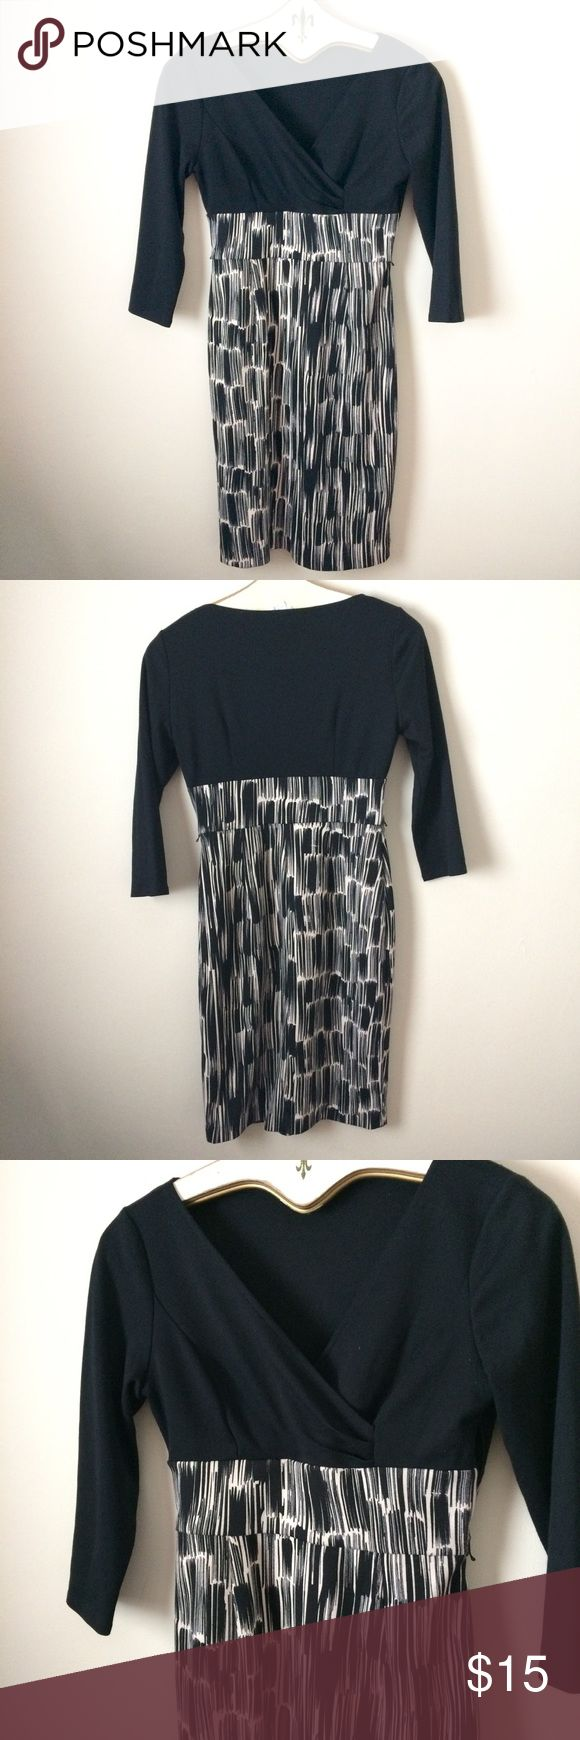 London Times black and white 3/4 sleeve dress London Times black and white 3/4 sleeve dress. Perfect for work or dinner. Size 4. Has loops for a belt but does not come with a belt. London Times Dresses